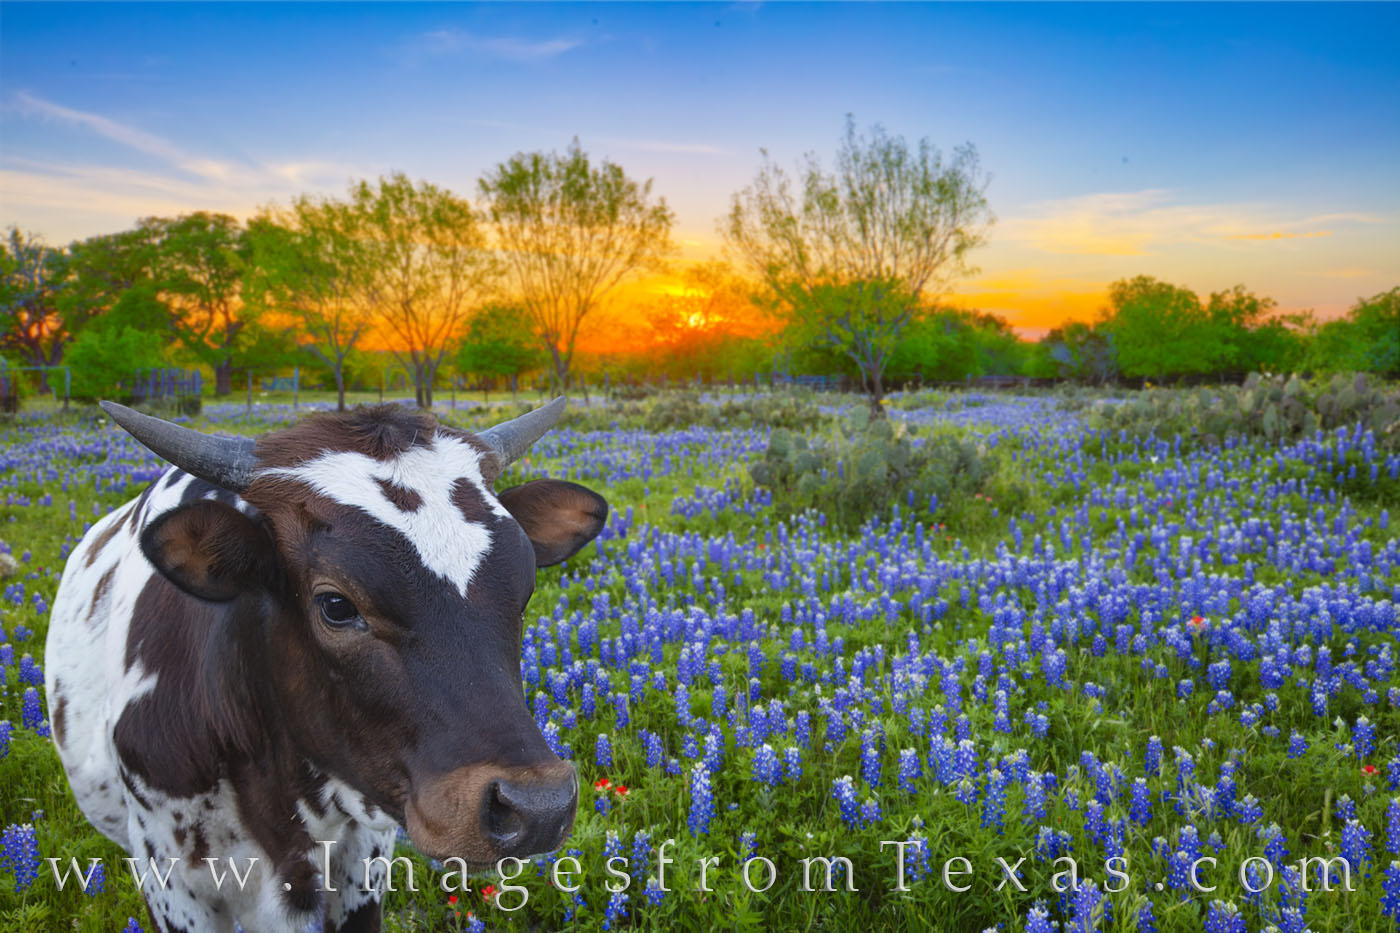 longhorn, calf, baby, bluebonnets, sunset, hill country, photobomb, blue, wildflowers, hill country, photo